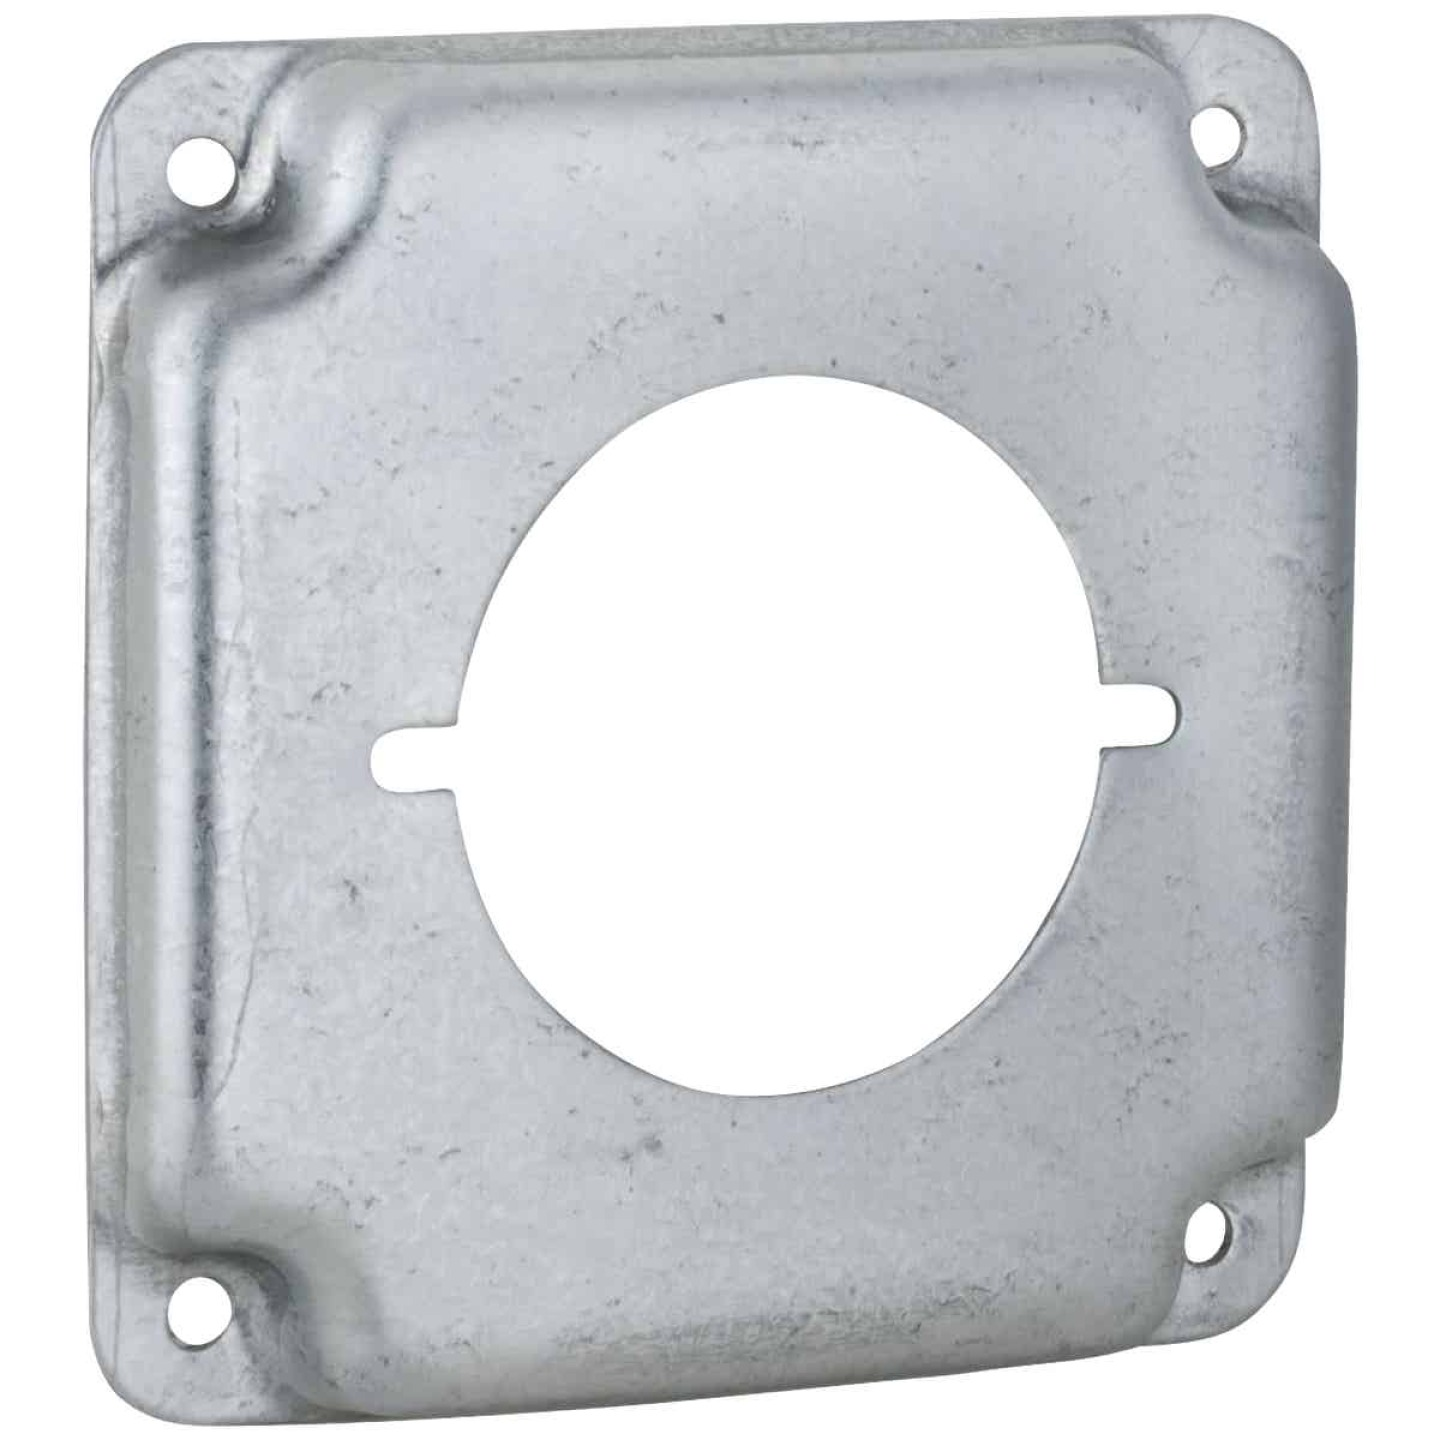 Raco 2.156 In. Dia. Receptacles 4 In. x 4 In. Square Device Cover Image 1